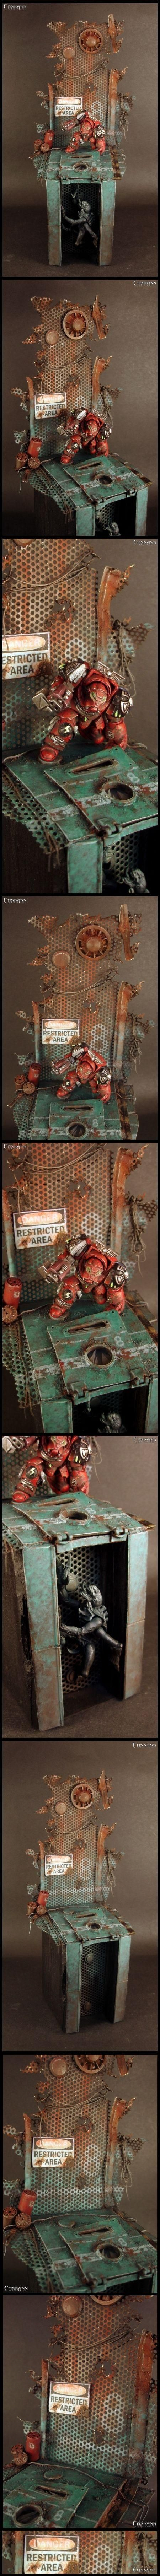 Awesome detail, but my favorite part is the lighting on the waiting Tyranid.